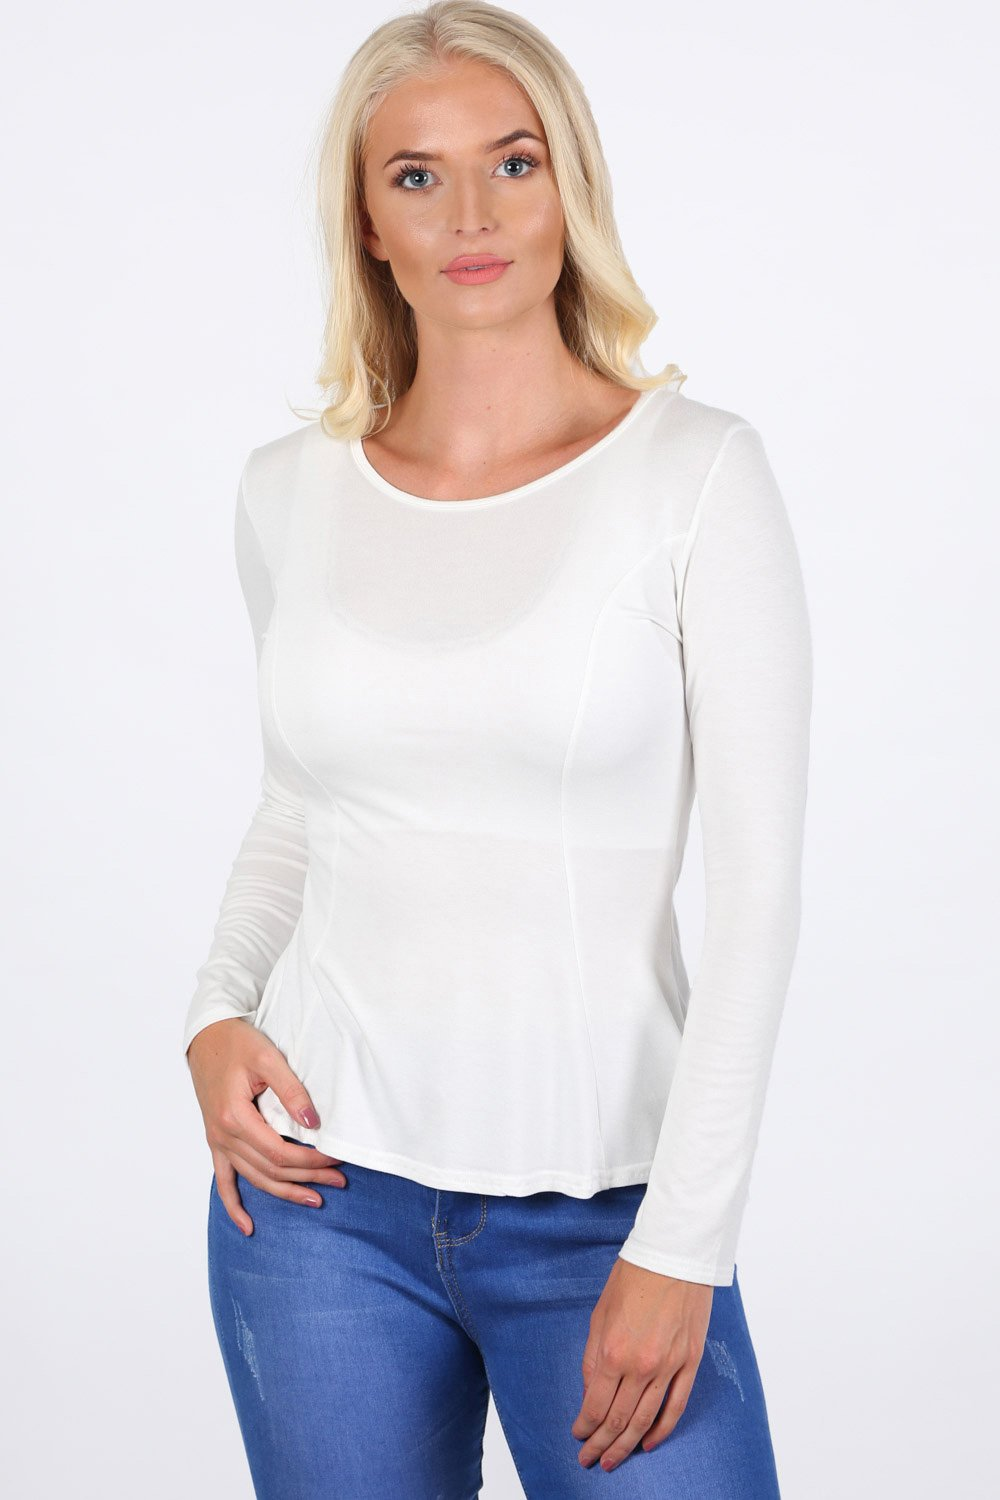 Scoop Neck Long Sleeve Peplum Top in Cream 0